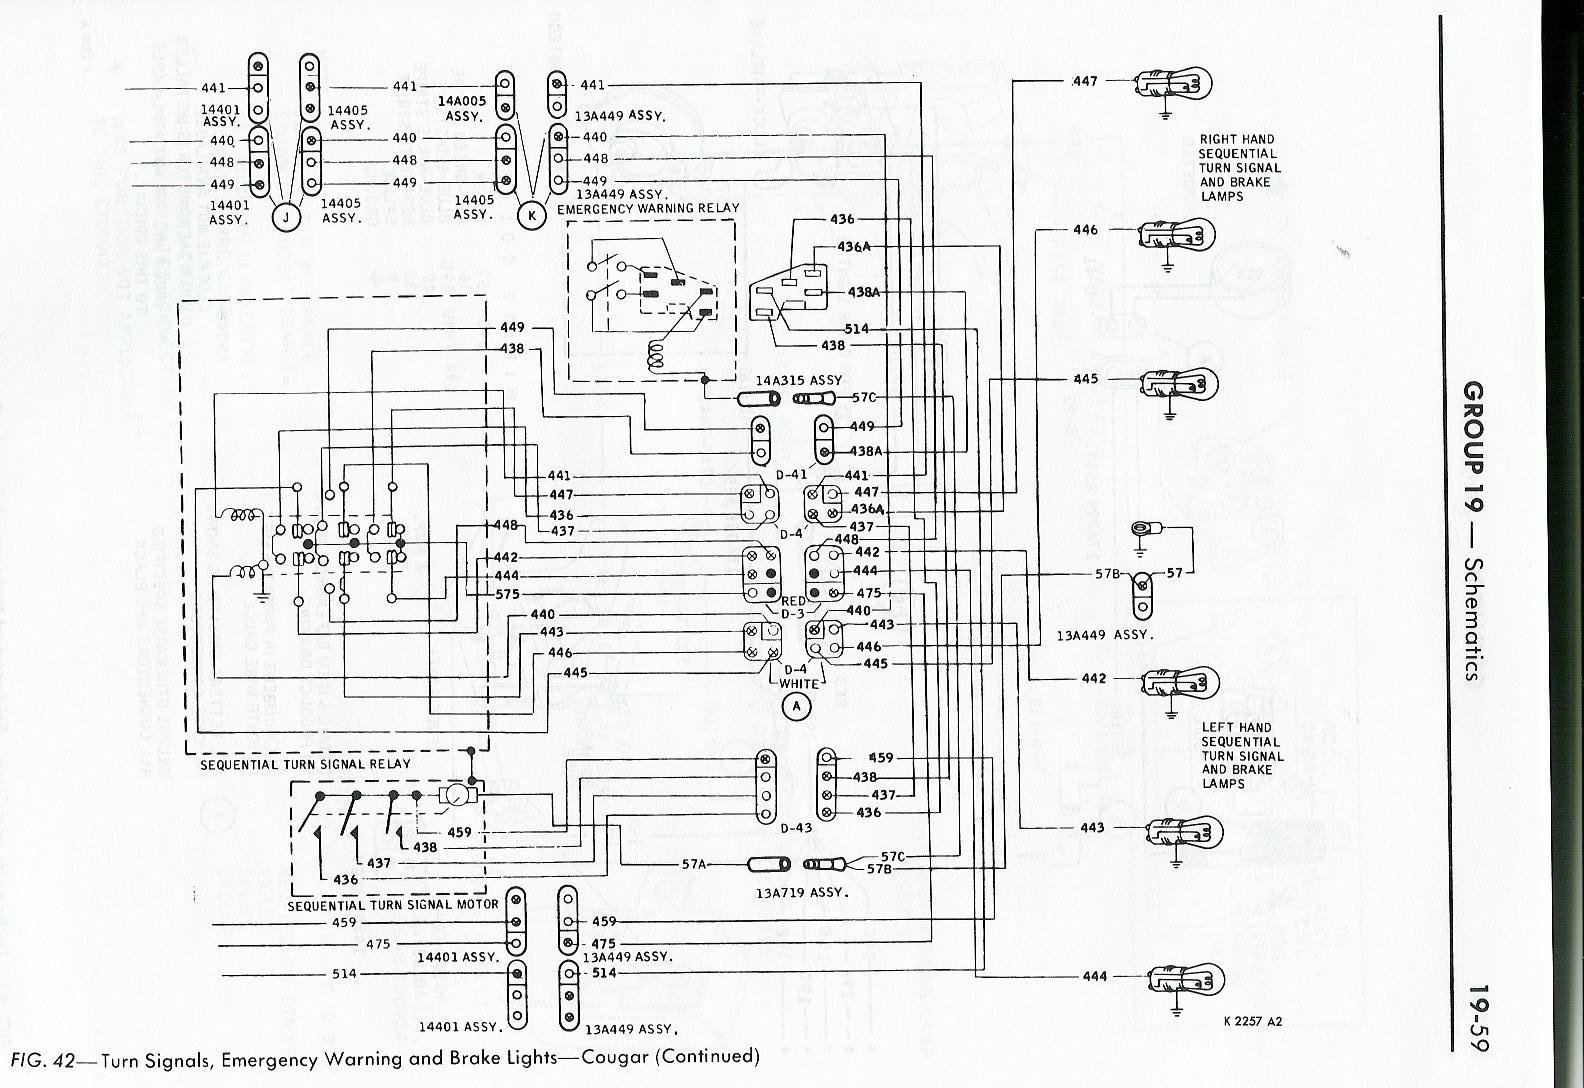 wire diagram 1968 cougar wiring diagram 1968 cougar wiring diagram wiring library